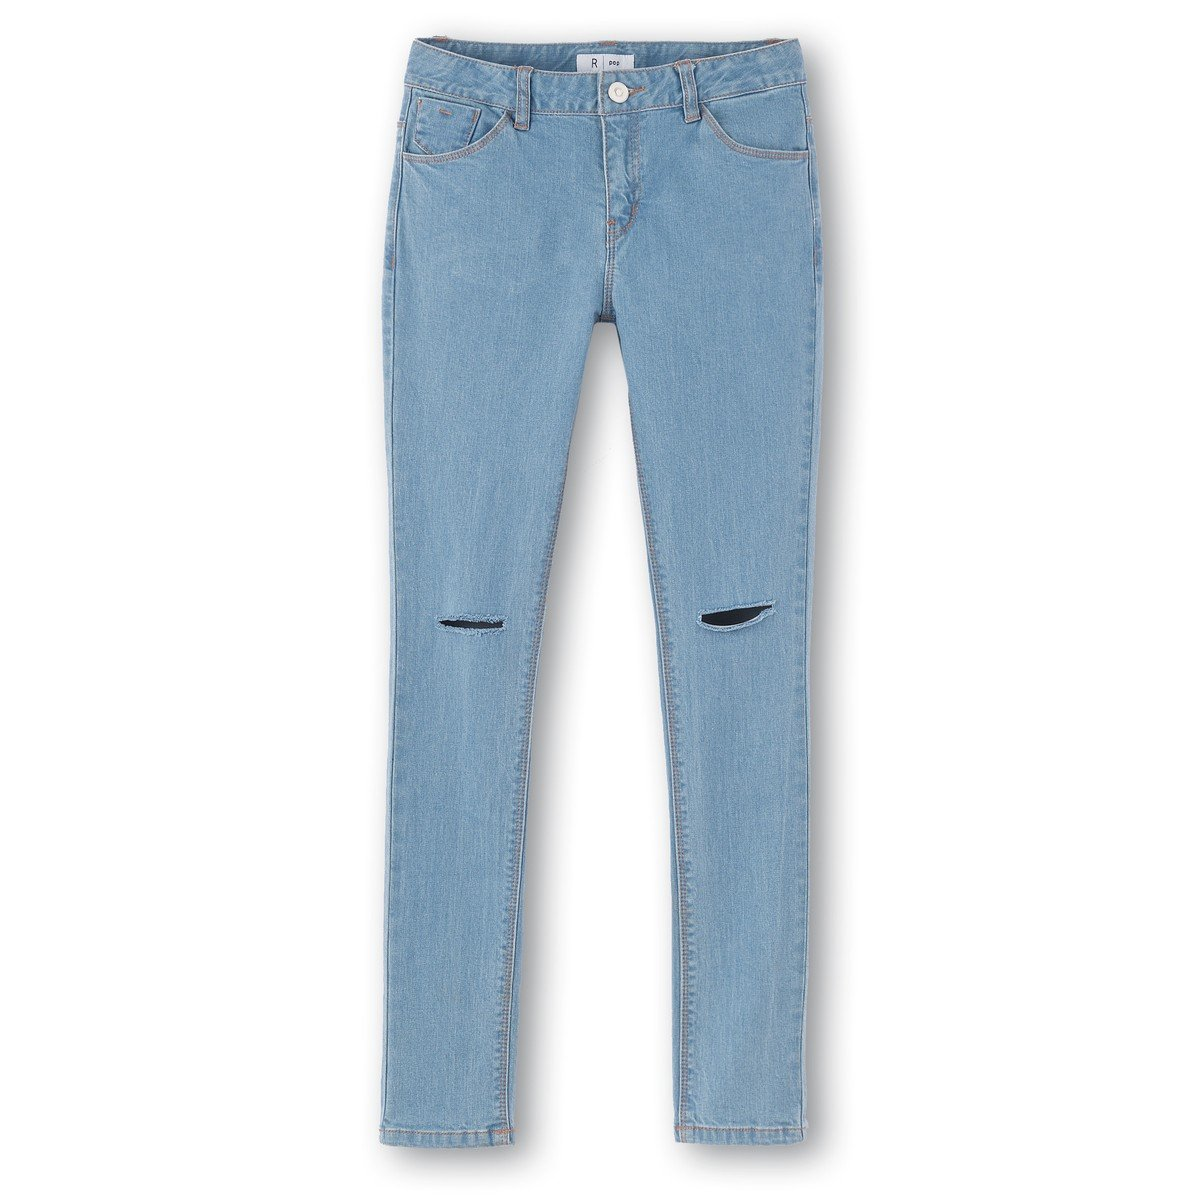 La Redoute Collections Bambina Jeans Skinny 1016 Anni 350054682